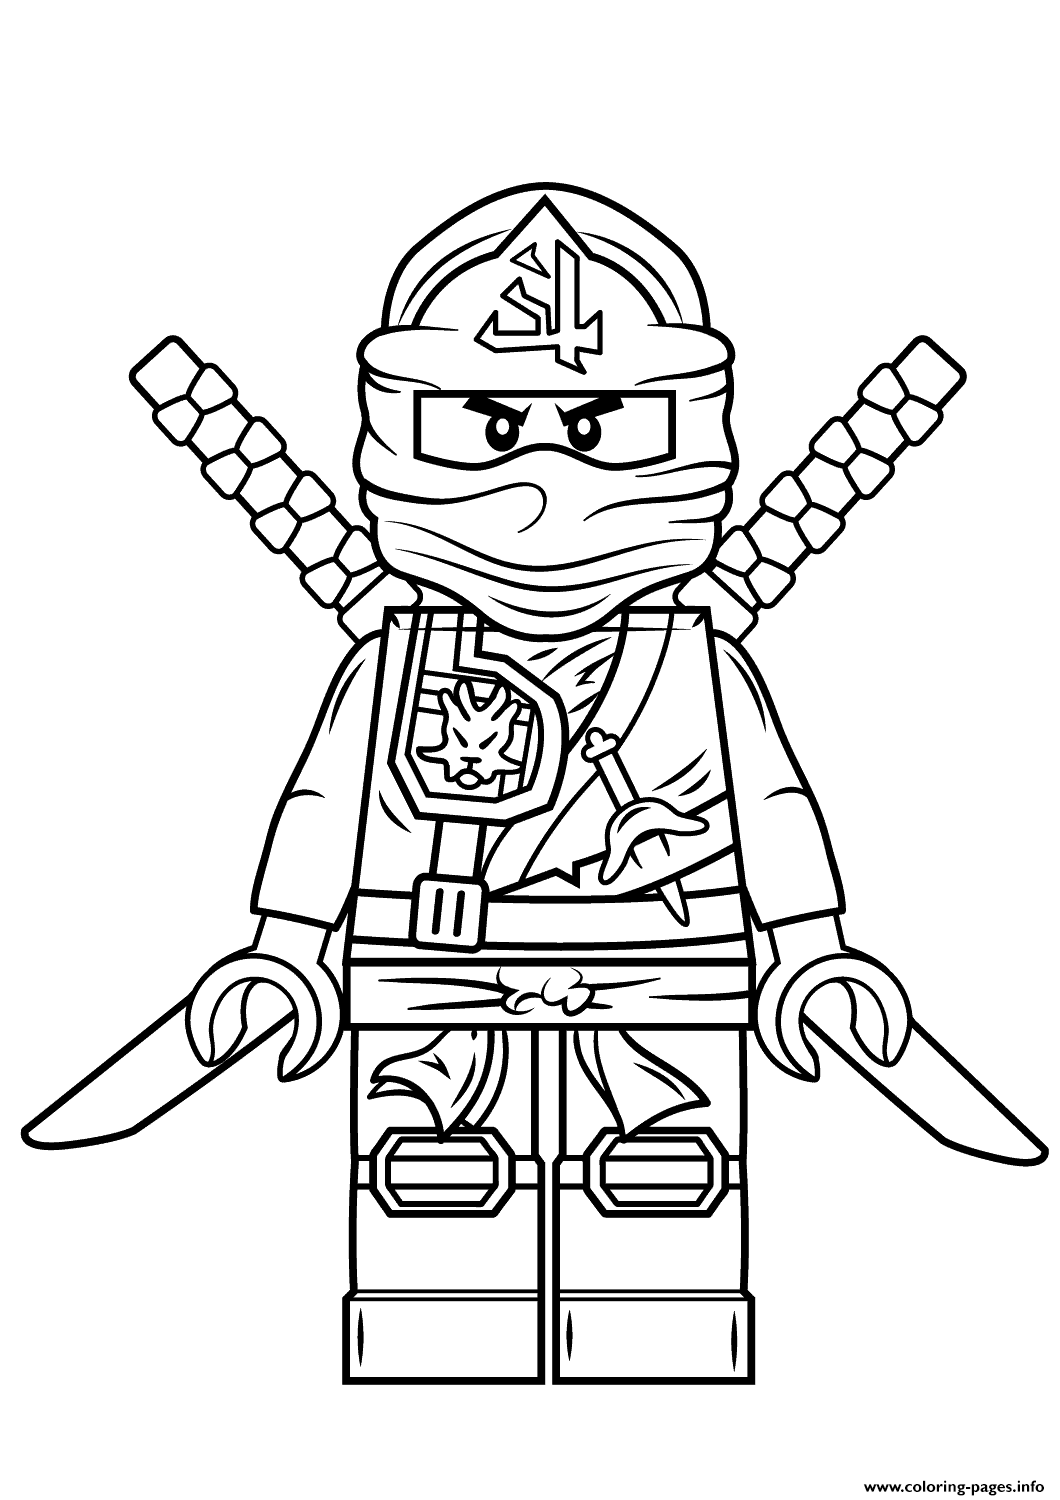 lego ninjago green ninja coloring pages print download 599 prints - Ninjago Coloring Pages To Print